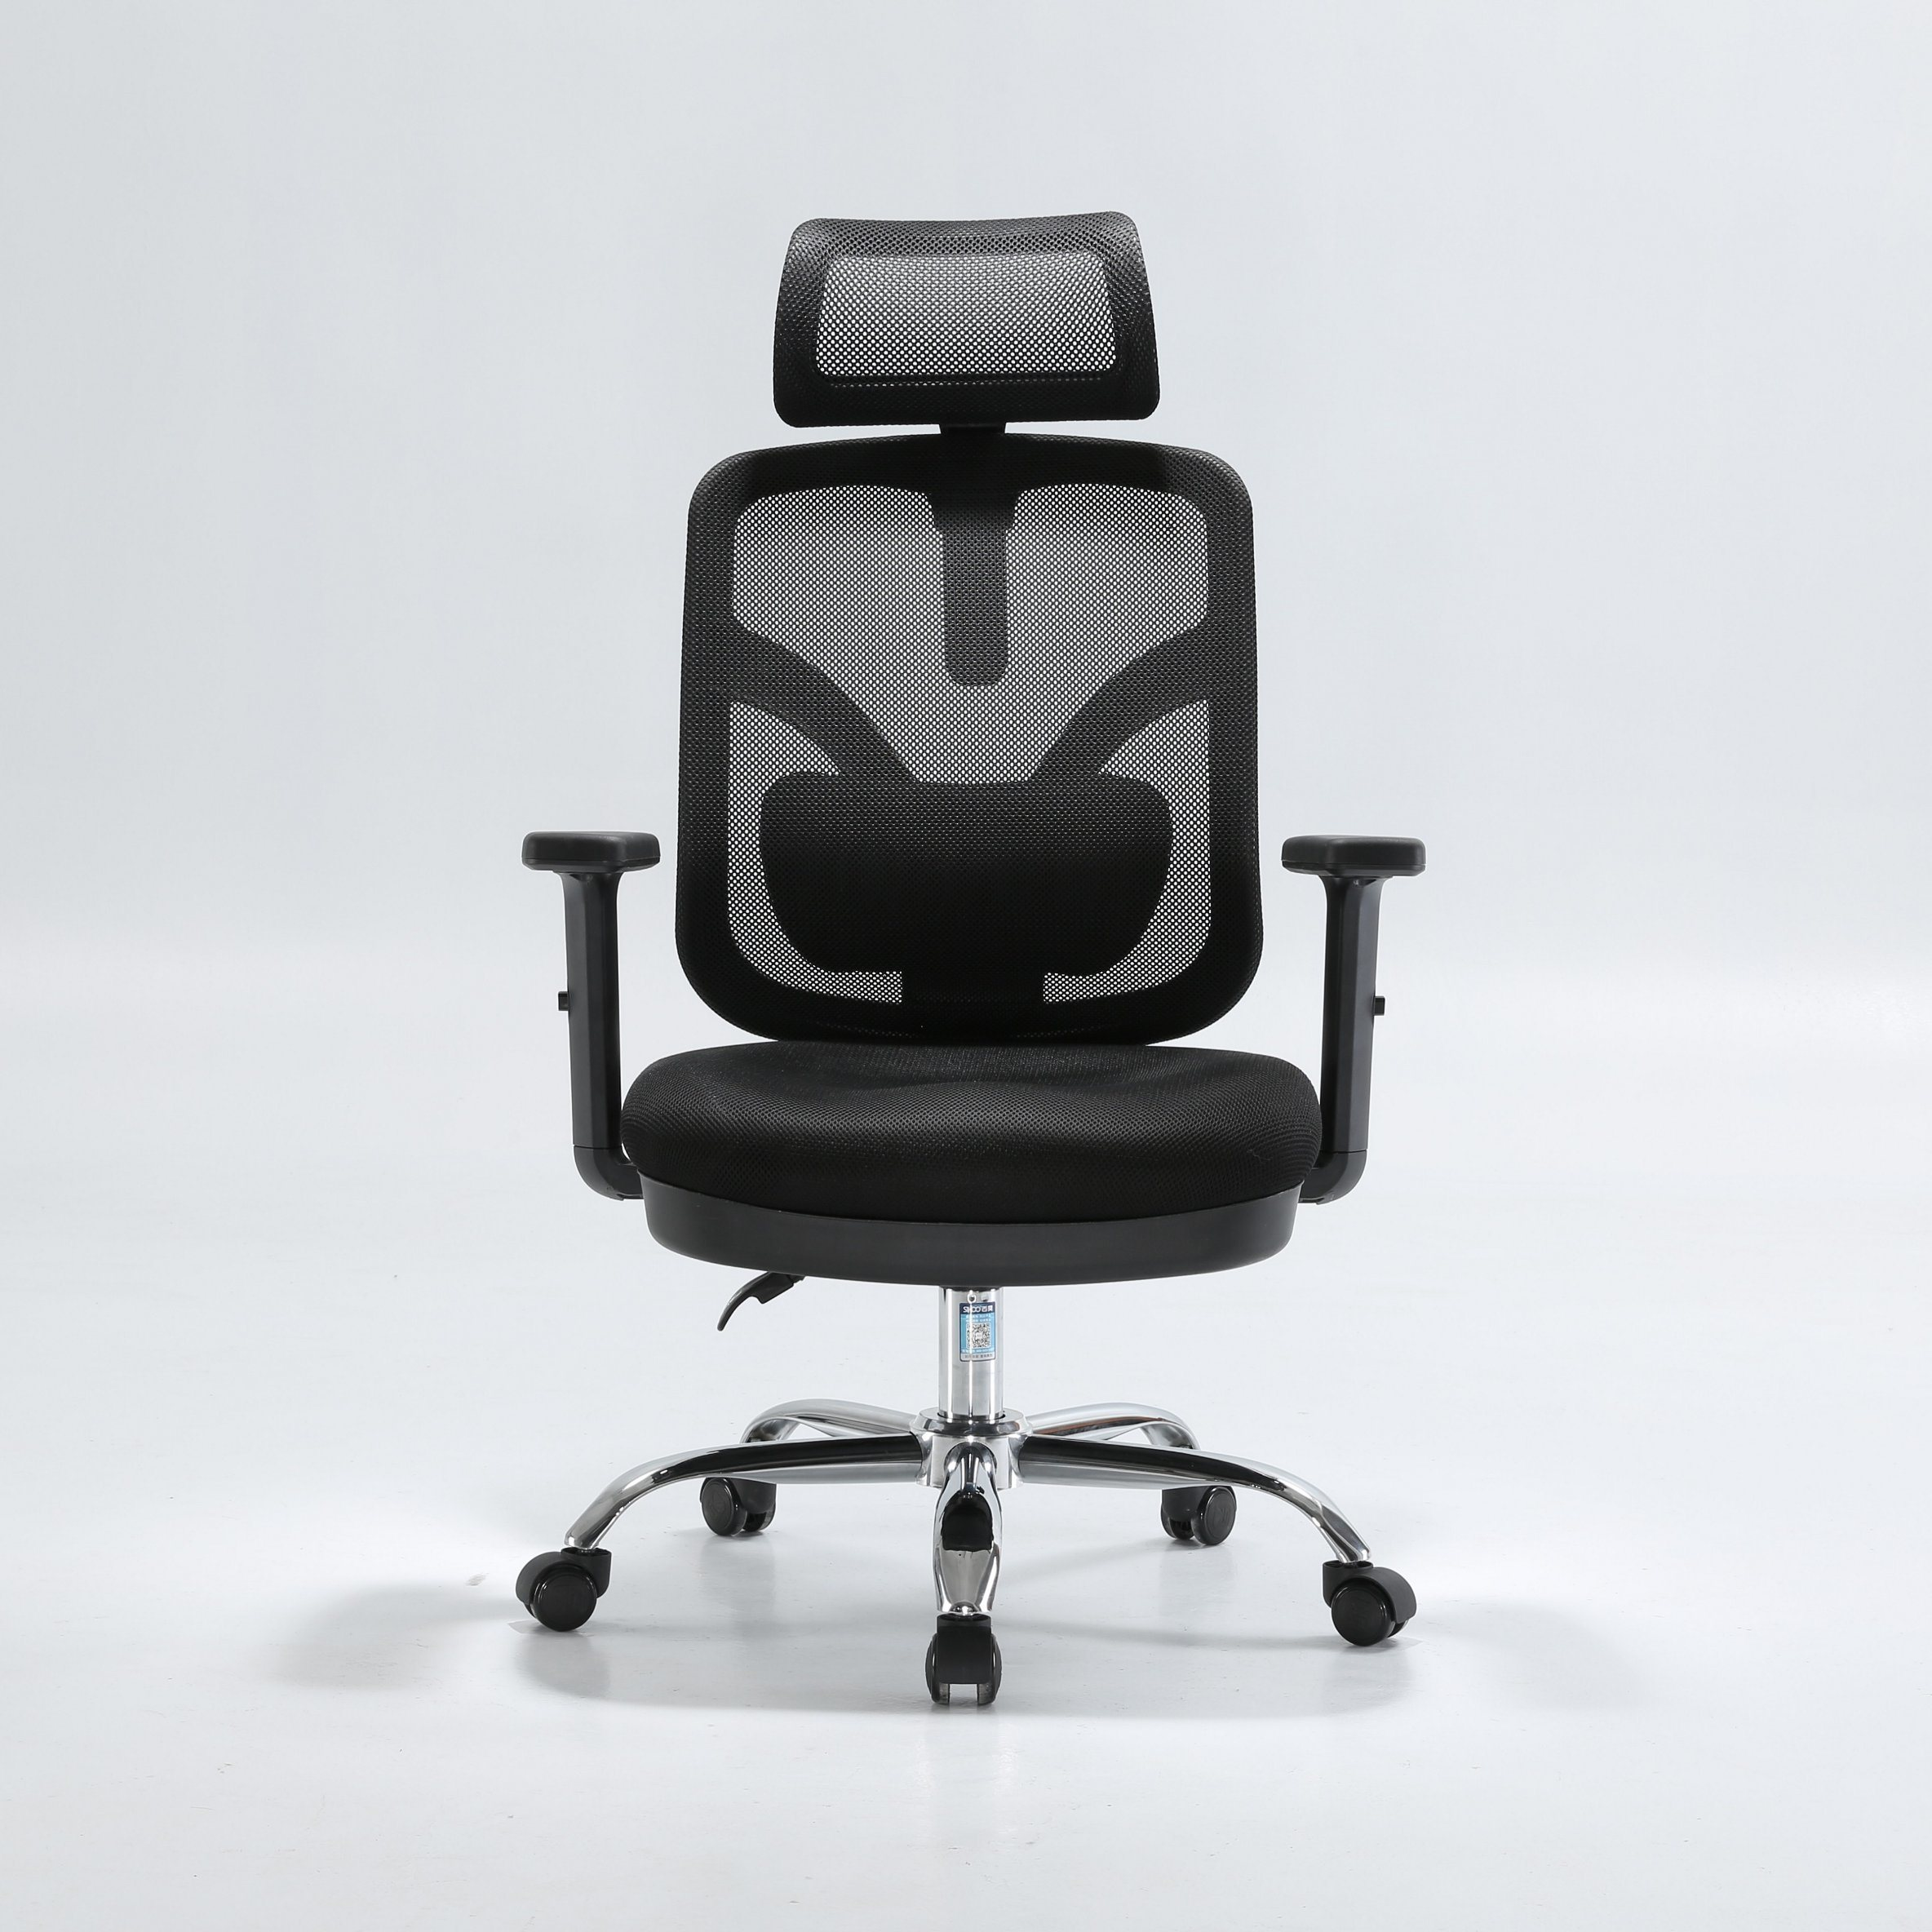 Decals For Baby Room, China Modern World Market Swivel Accent Officeworks Butterfly Lumbar Mesh Chair China Ergonomic Office Chair Foshan Factory Chair